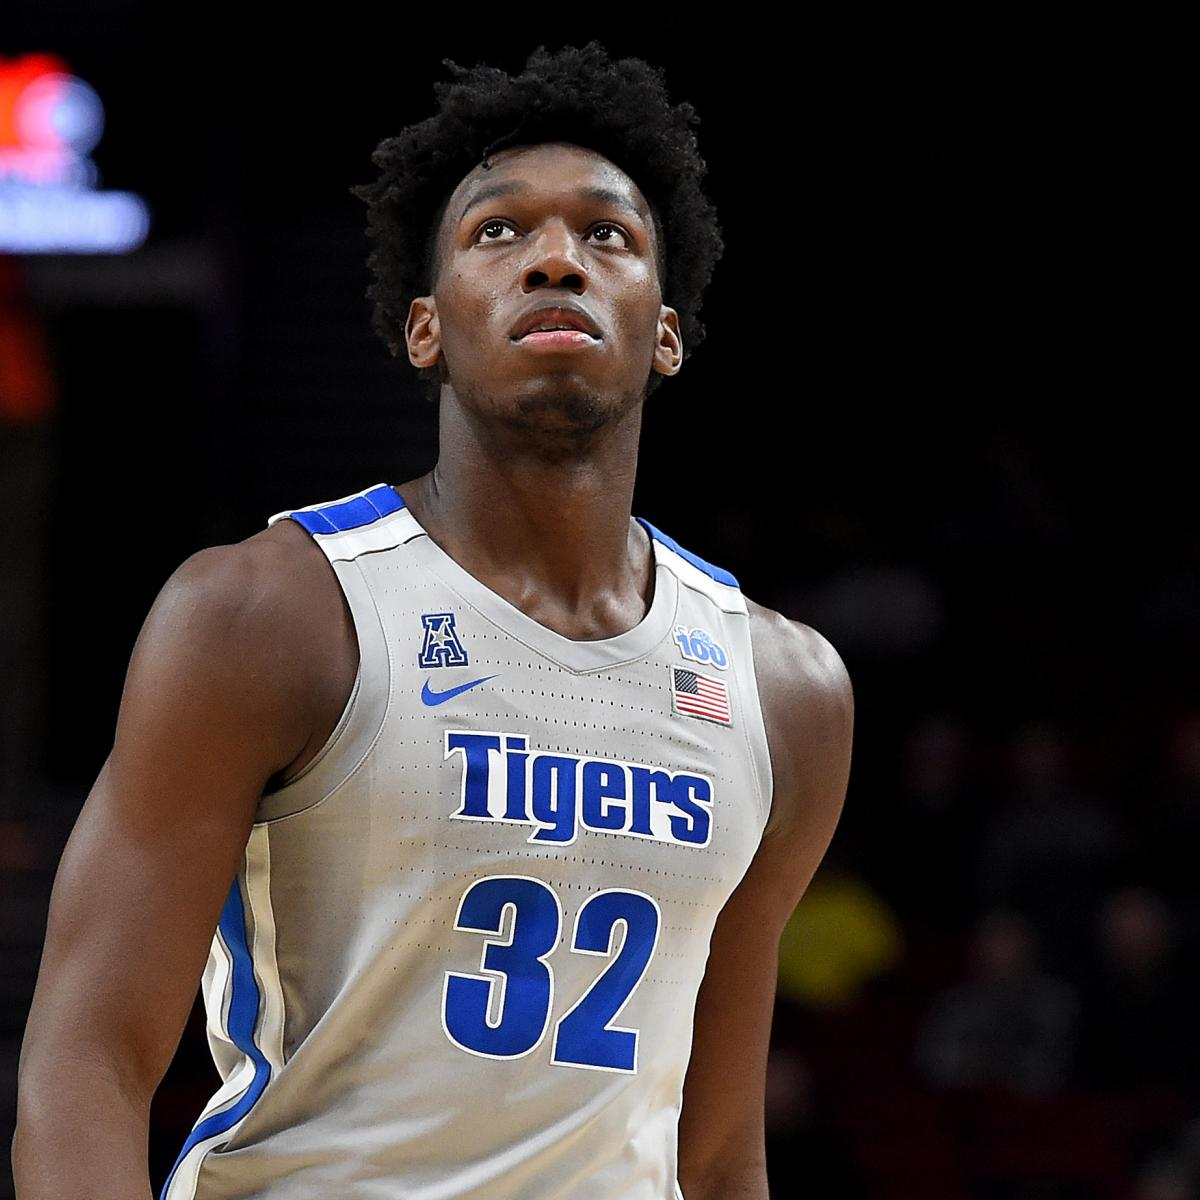 NBA Draft 2020: Finding Ideal Fits for James Wiseman and Best Big Men